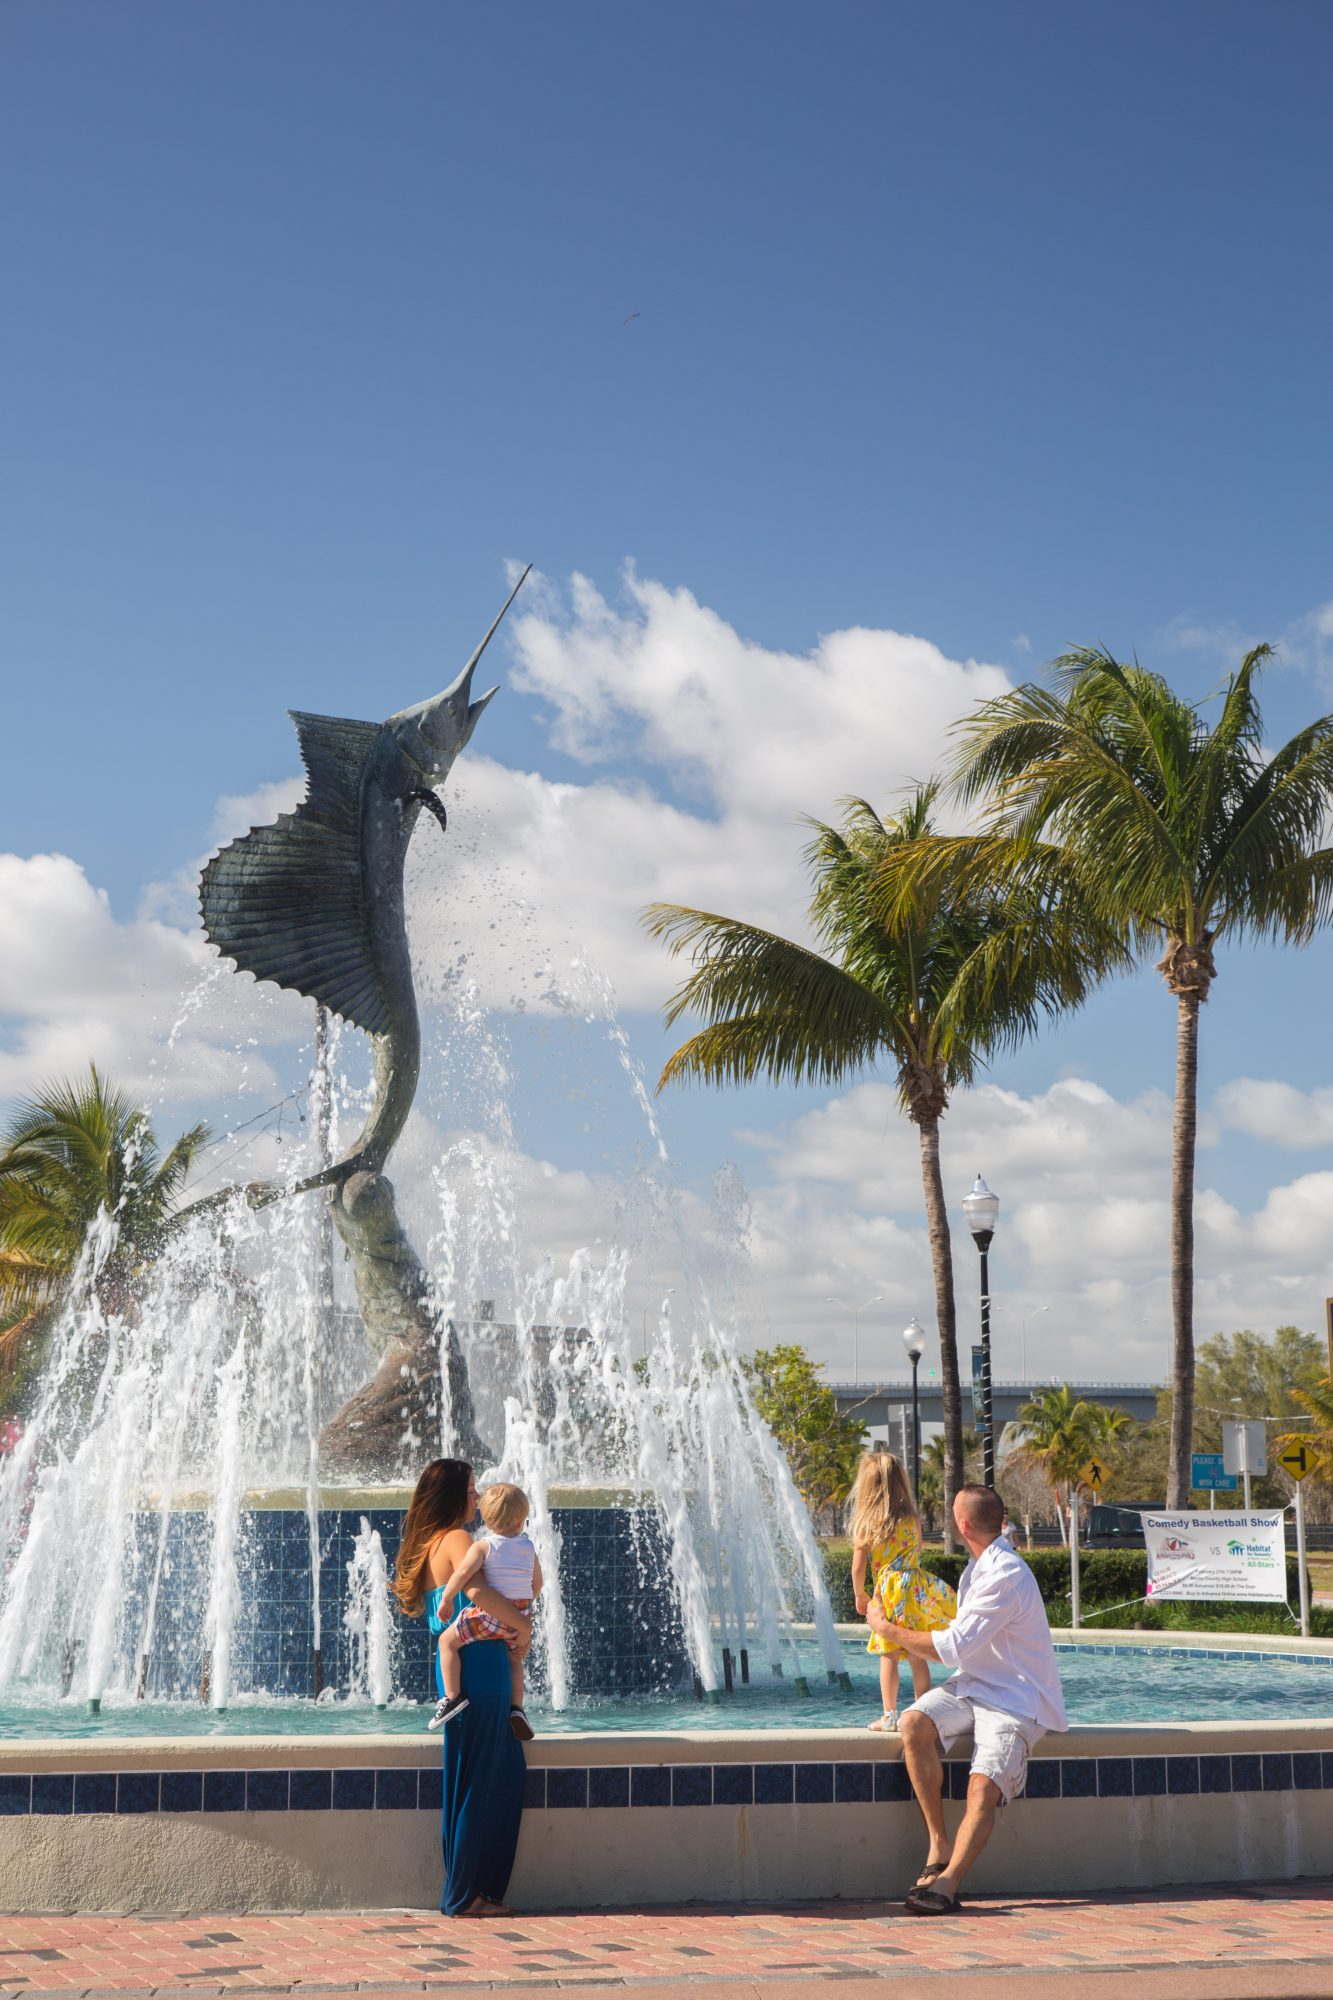 "Tucked between Vero Beach and Palm Beach, this quaint Intracoastal town is a hidden gem along the coast, with Old Florida vibes and a reputation as the ""sailfish capital of the world."" The laid-back feel and colorful boutique-lined downtown are draws for seniors, who make up more than a quarter of the town's population."